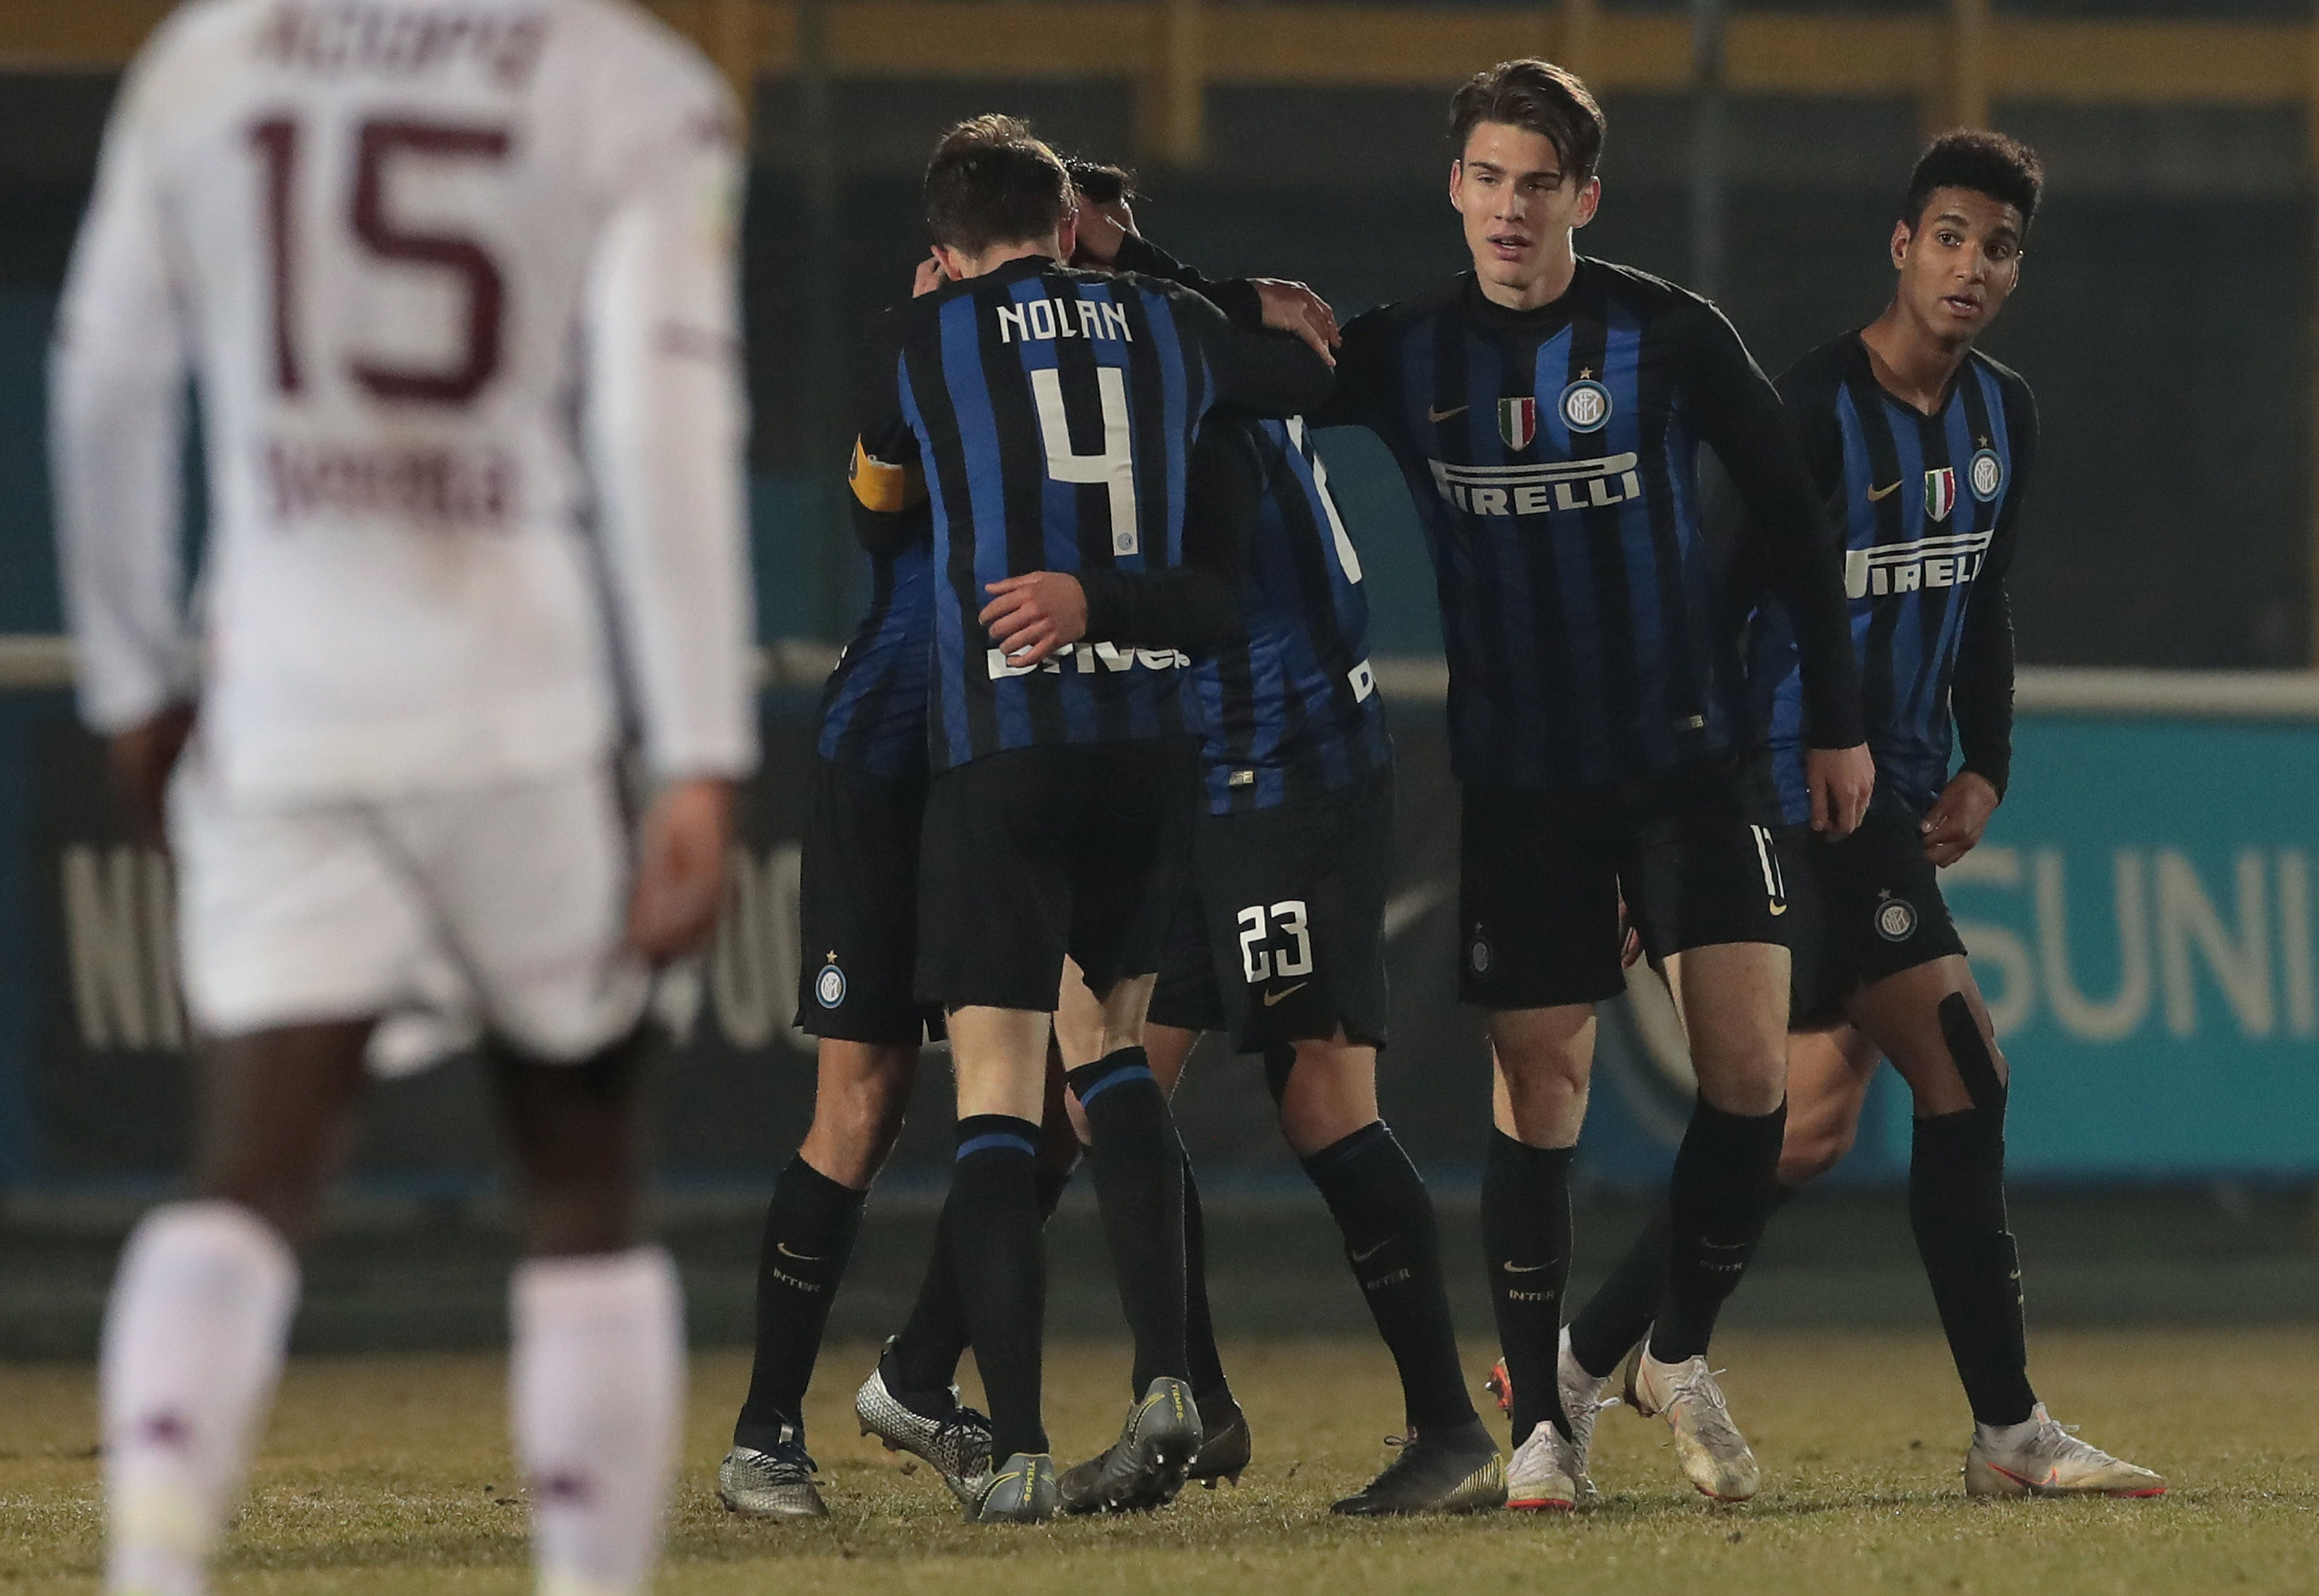 Primavera TIM Supercoppa, Inter 2-2 Torino (Torino win 4-2 on penalties)